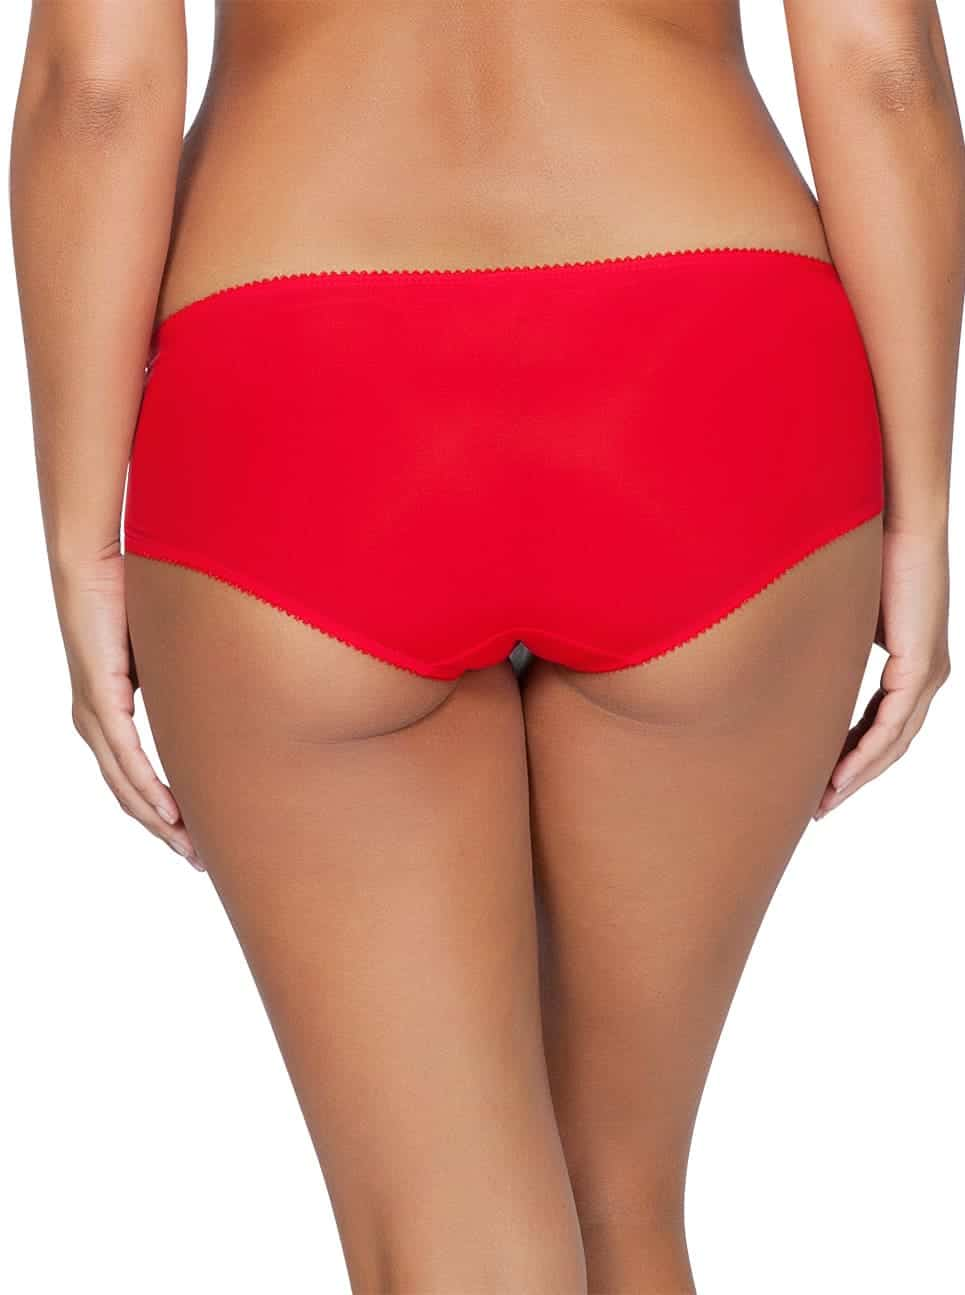 Marion P5395Hipster TangoRed Back copy - Marion Hipster – Tango Red – P5395